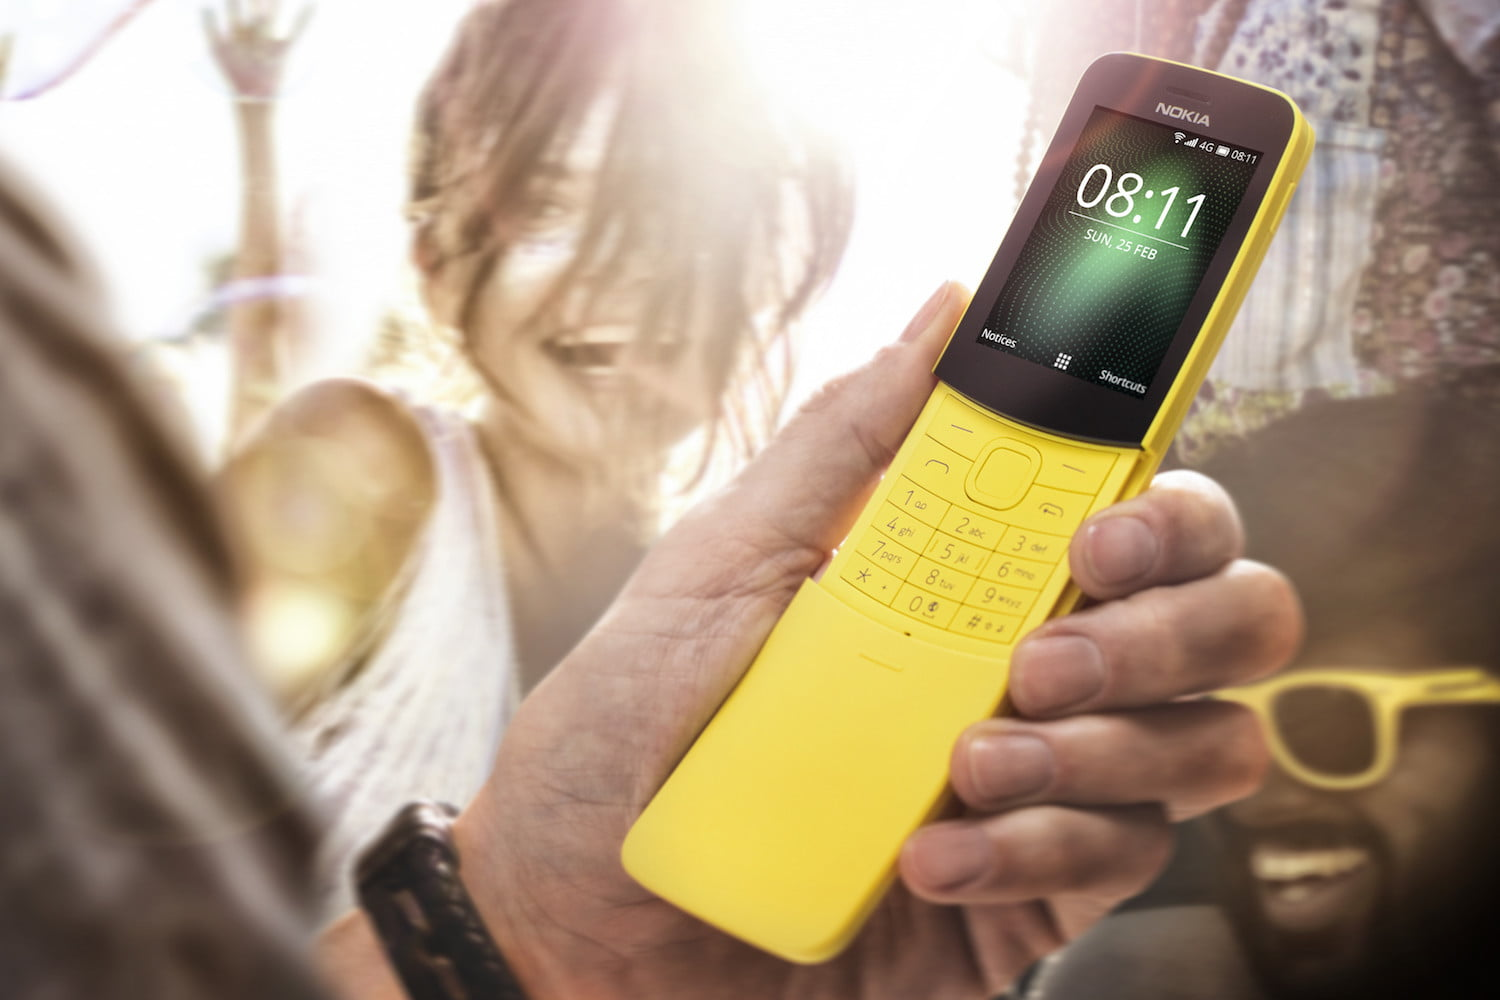 Nokia 8110 4g everything you need to know digital trends hmd global launches nokia 8110 with 4g support gumiabroncs Gallery